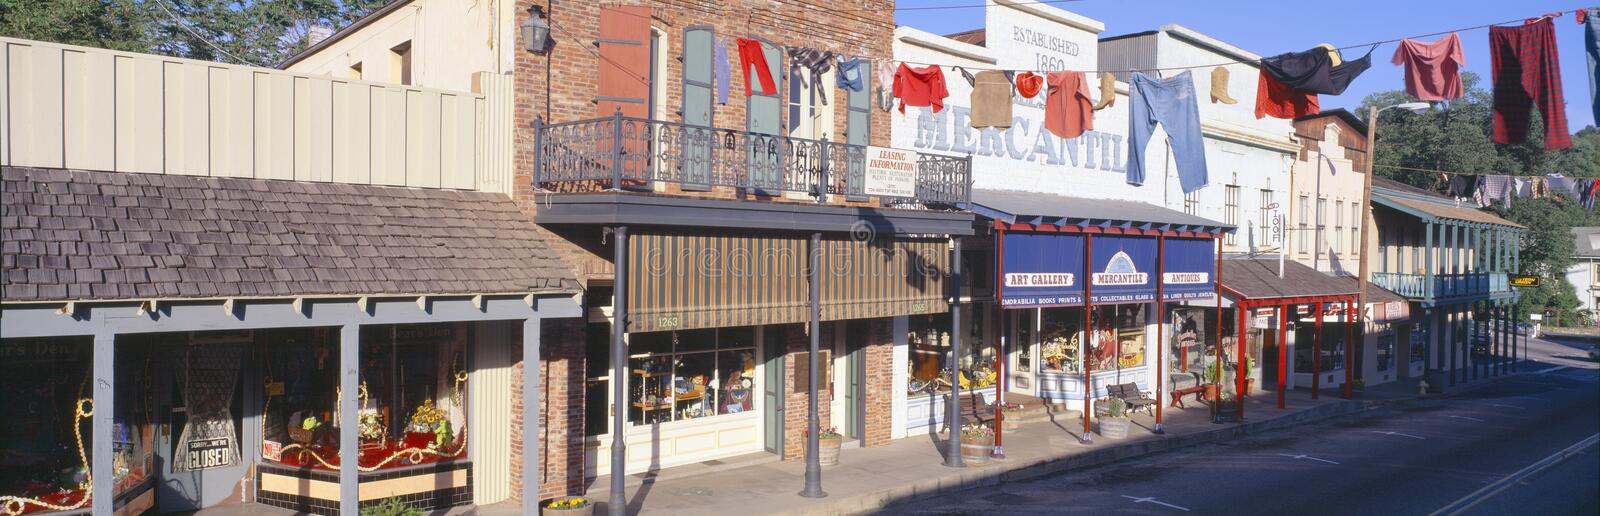 Store Fronts. In Angels Camp, California royalty free stock image